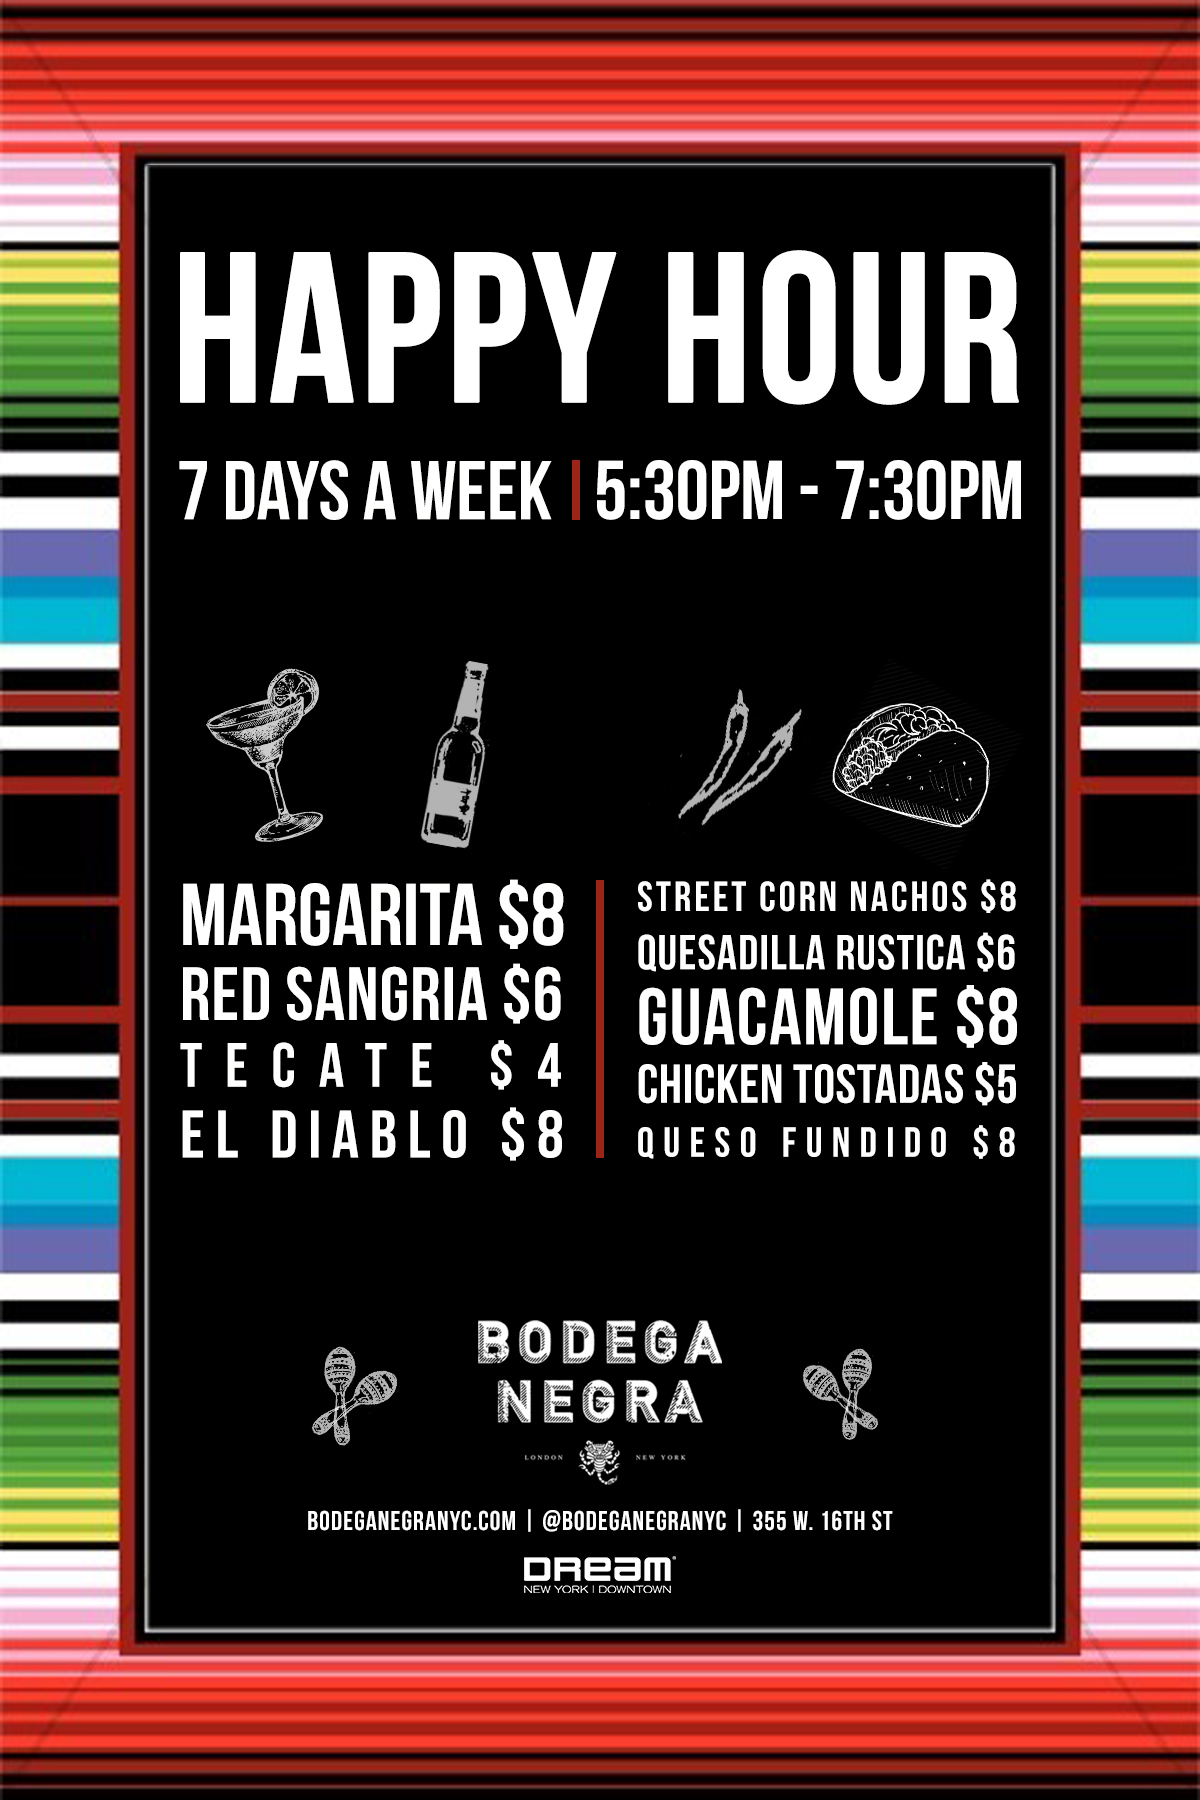 Bodega Negra Happy Hour